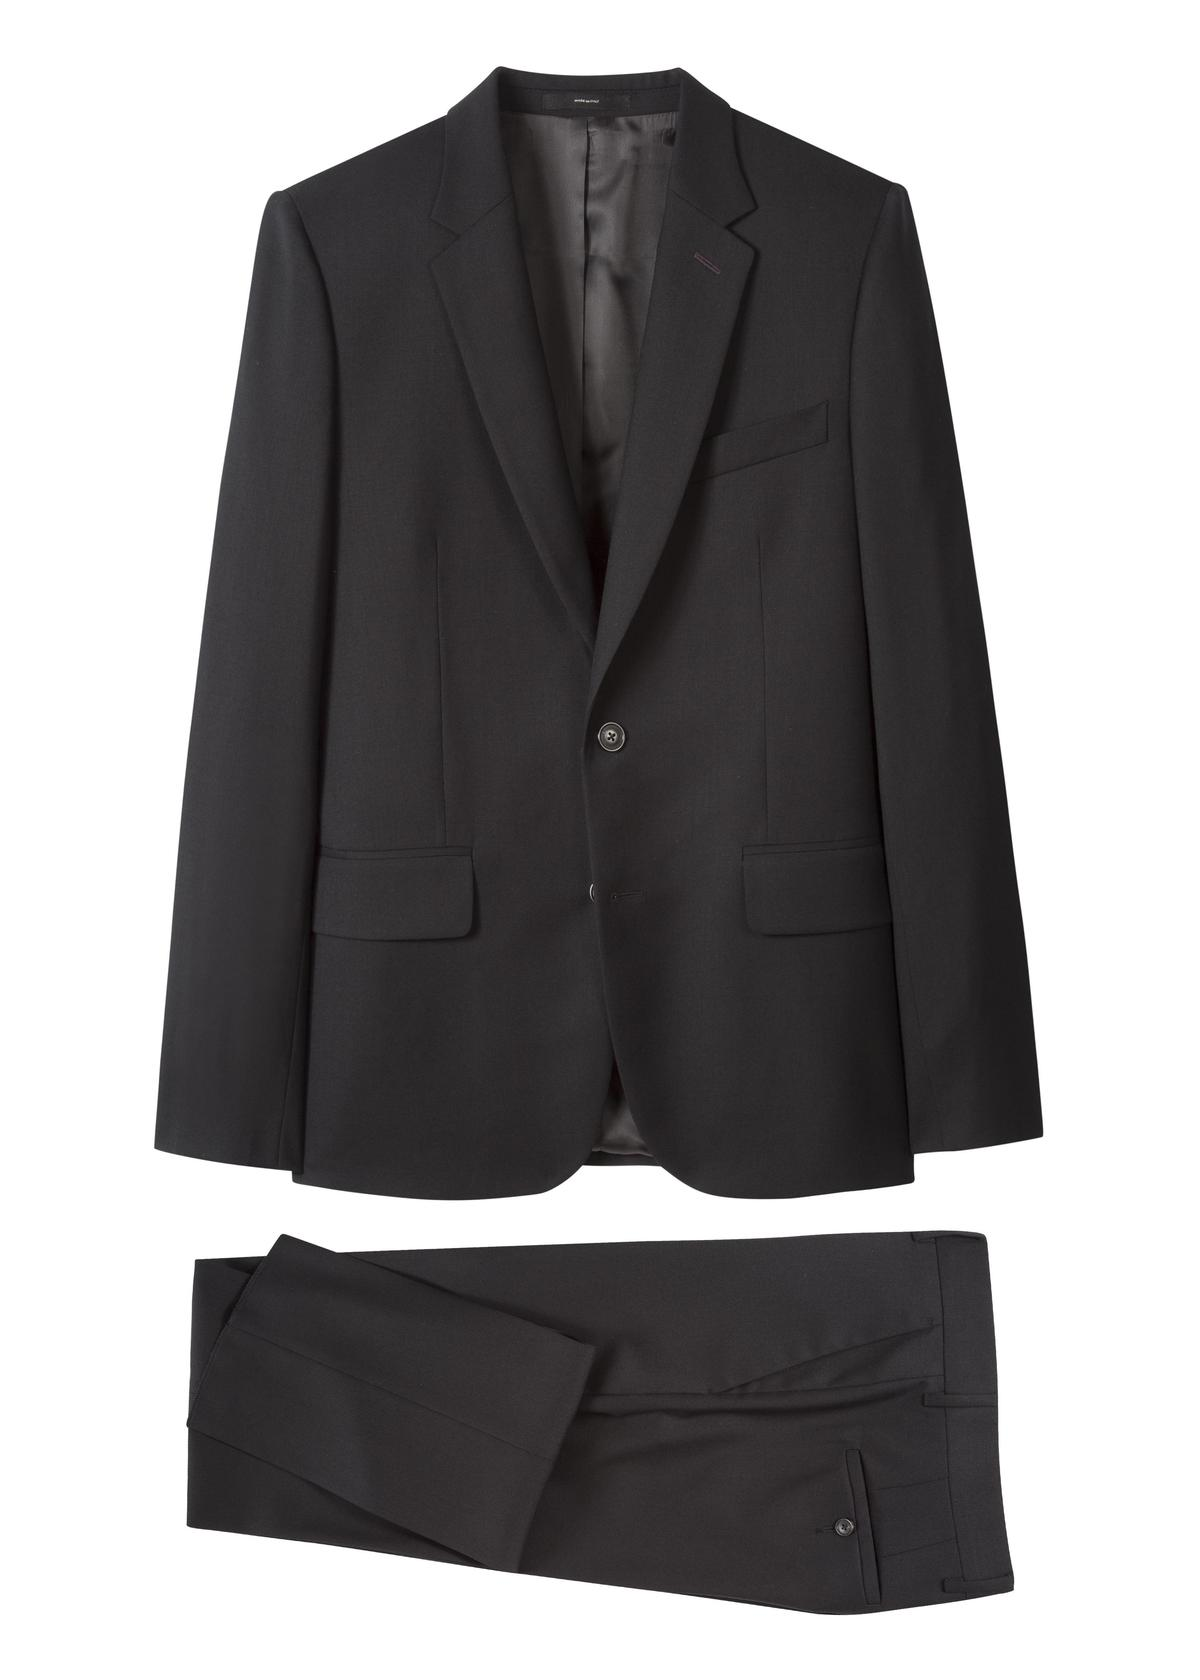 PAUL SMITH MIB系列 A Suit To Travel In成套黑色抗皺西裝 NT$58,500(PAUL SMITH提供)